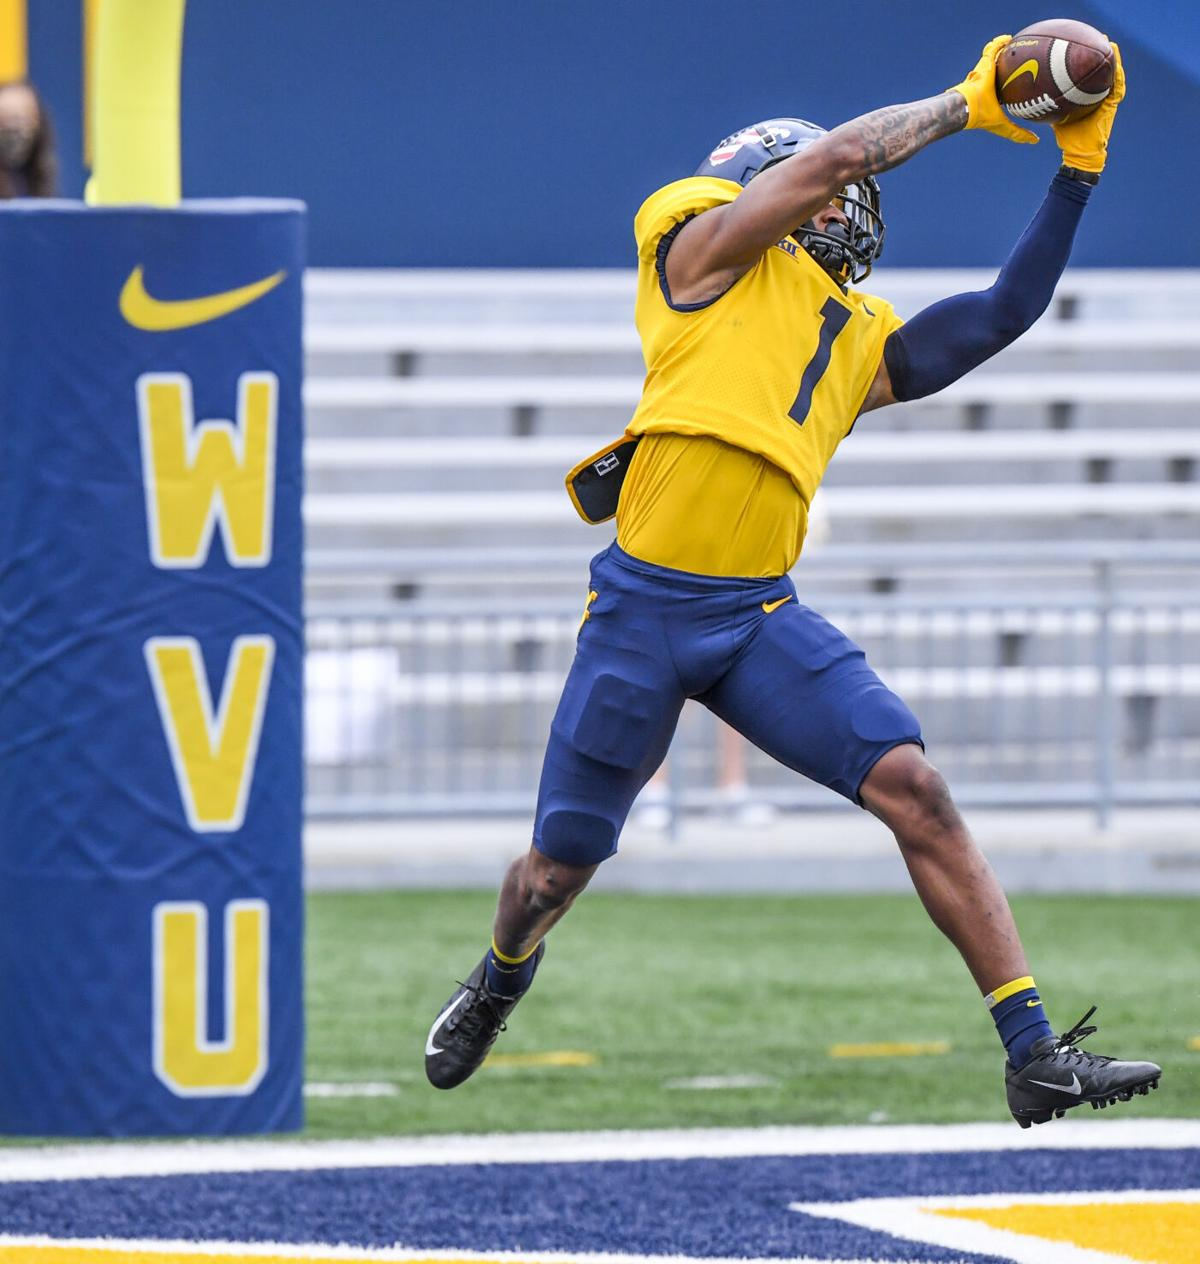 West Virginia wide receiver Winston Wright Jr. makes a catch in the Gold-Blue spring game on April 24, 2021.